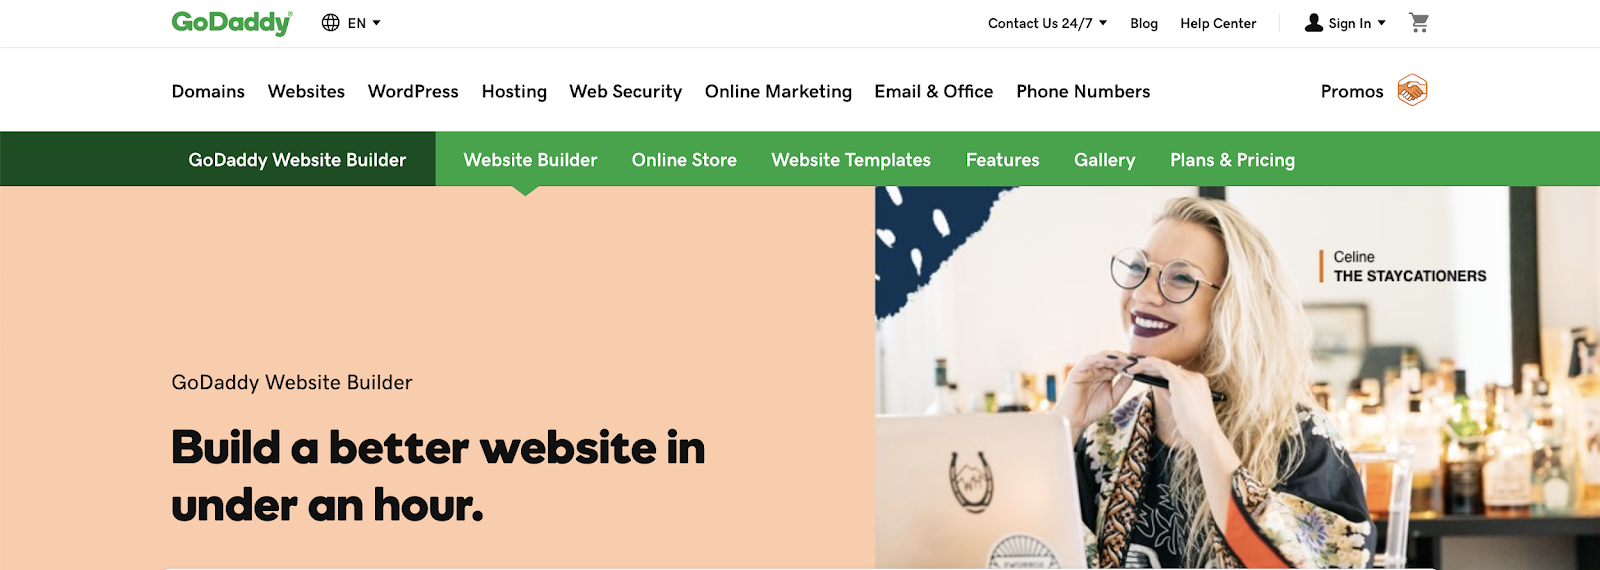 GoDaddy site builder homepage